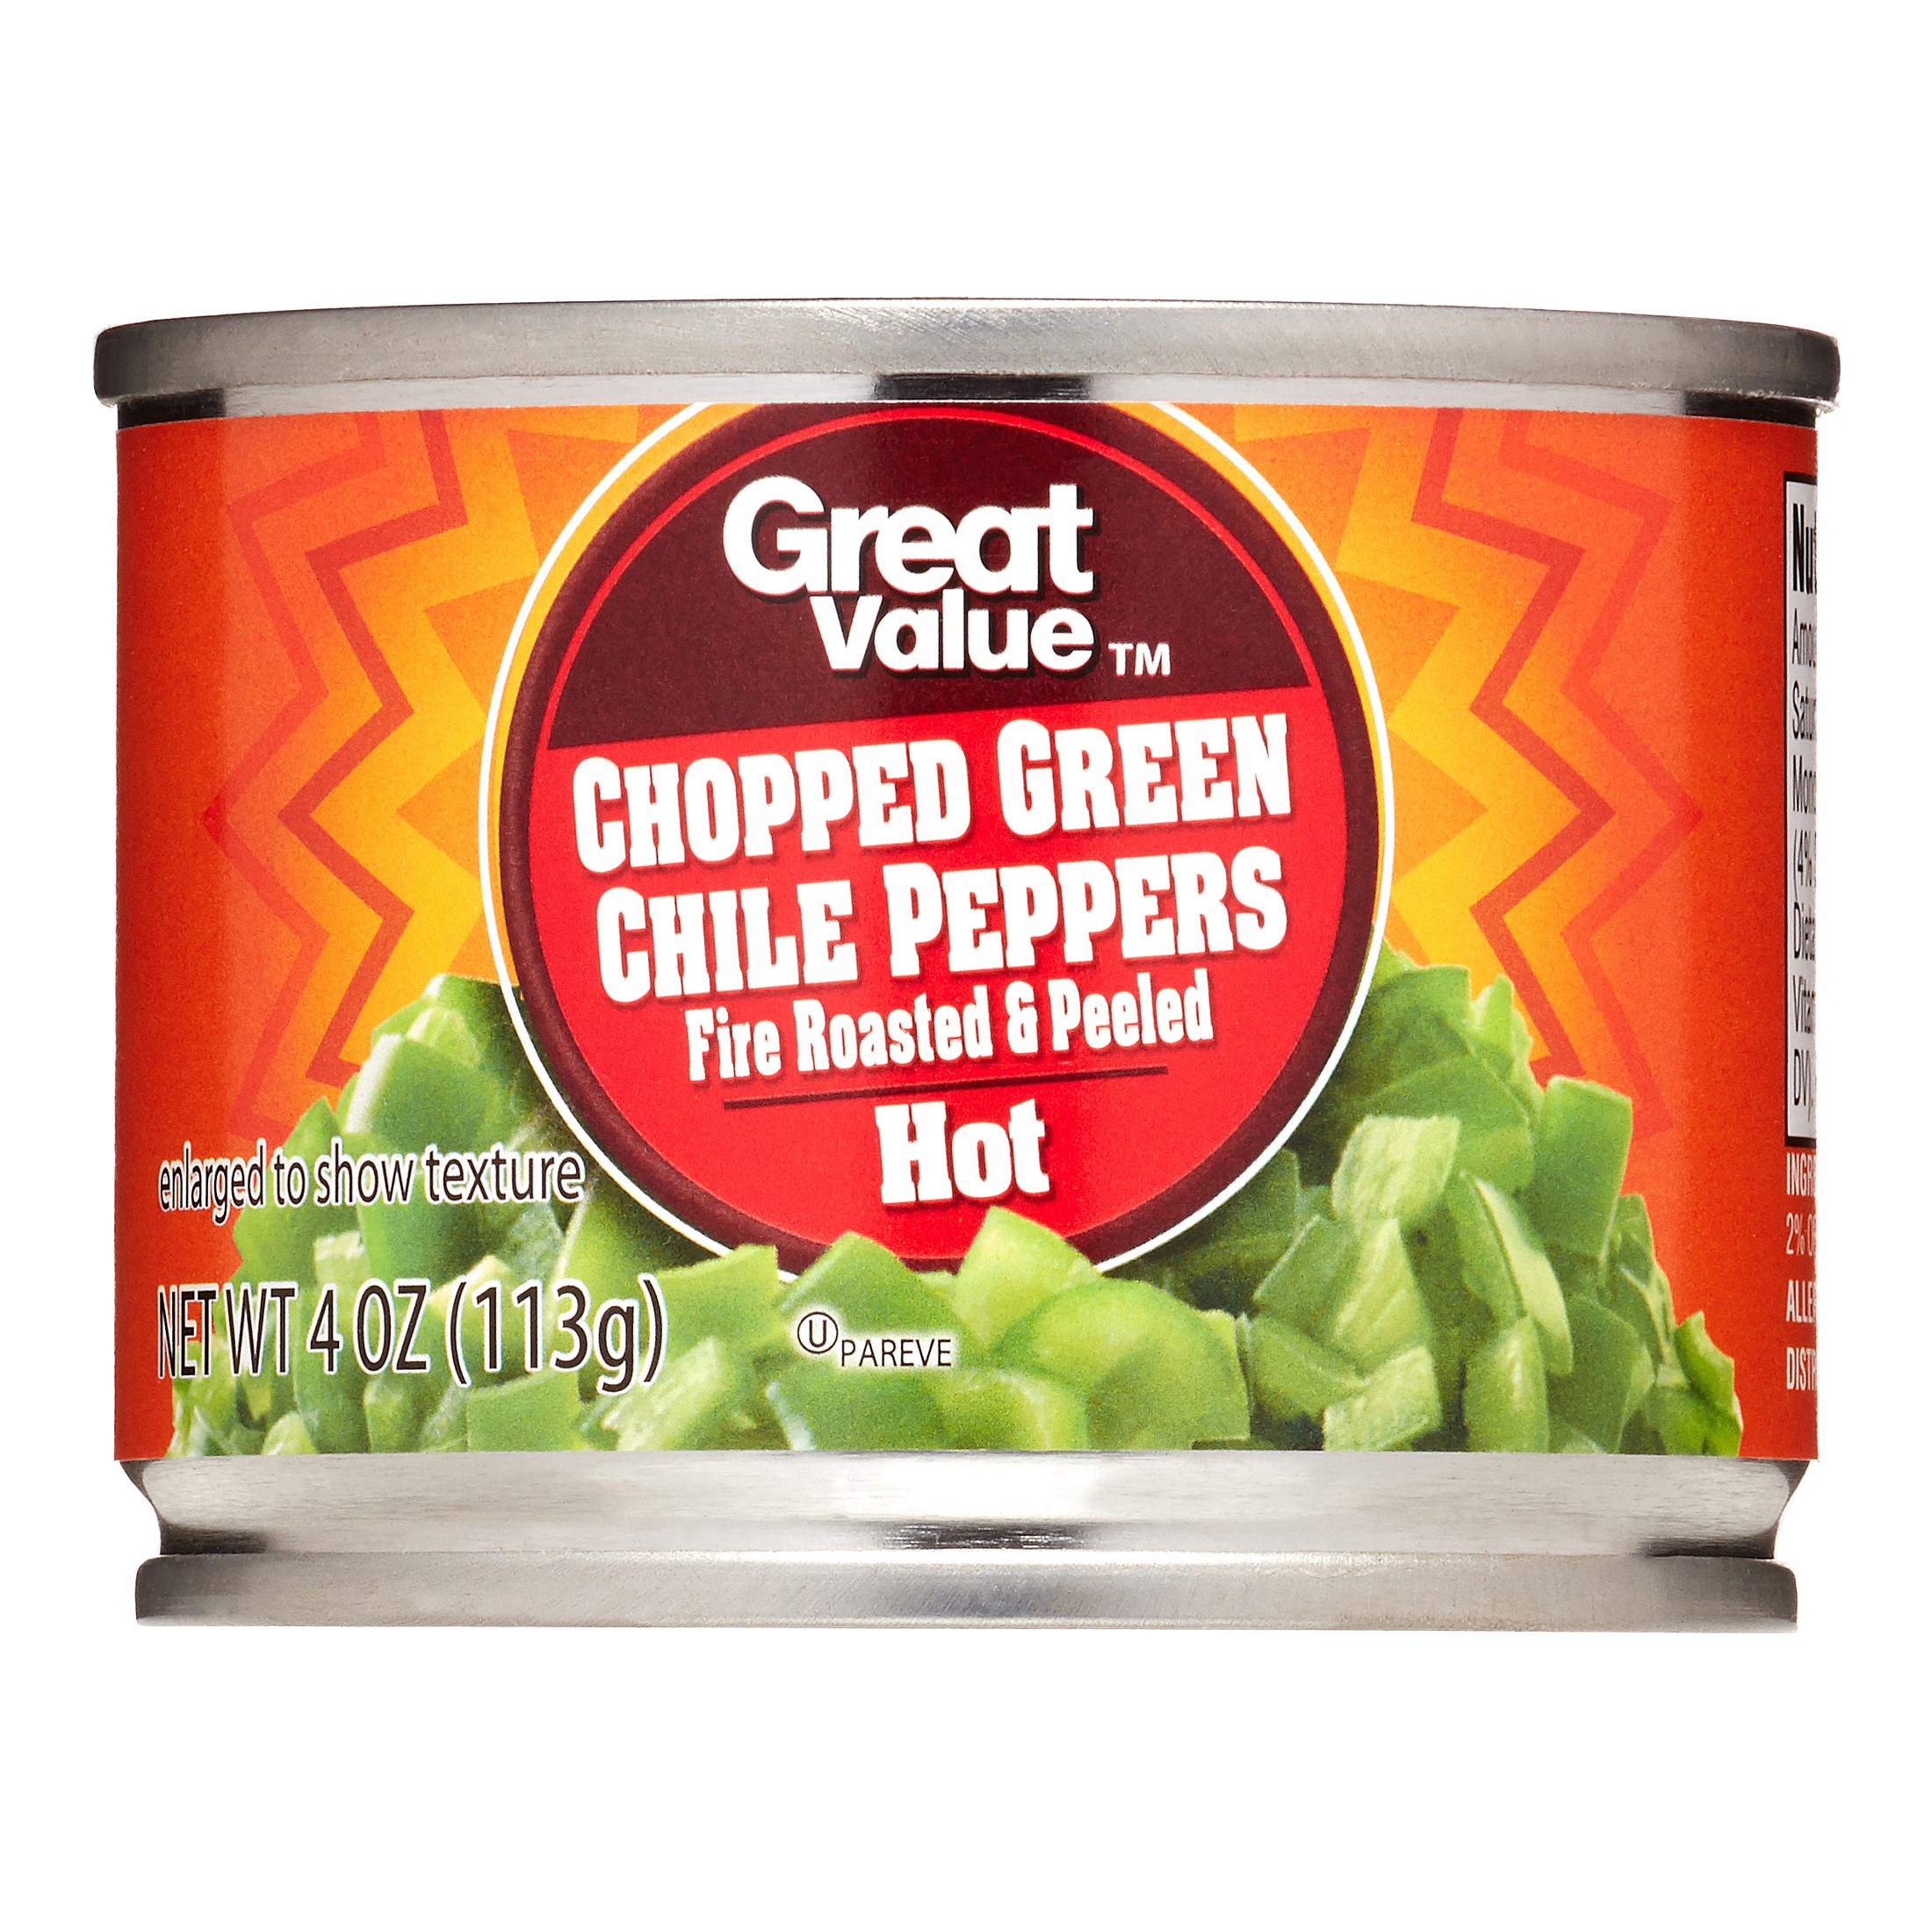 Great Value Chopped Diced Green Chiles, Fire Roasted and Peeled, Hot, 4 oz